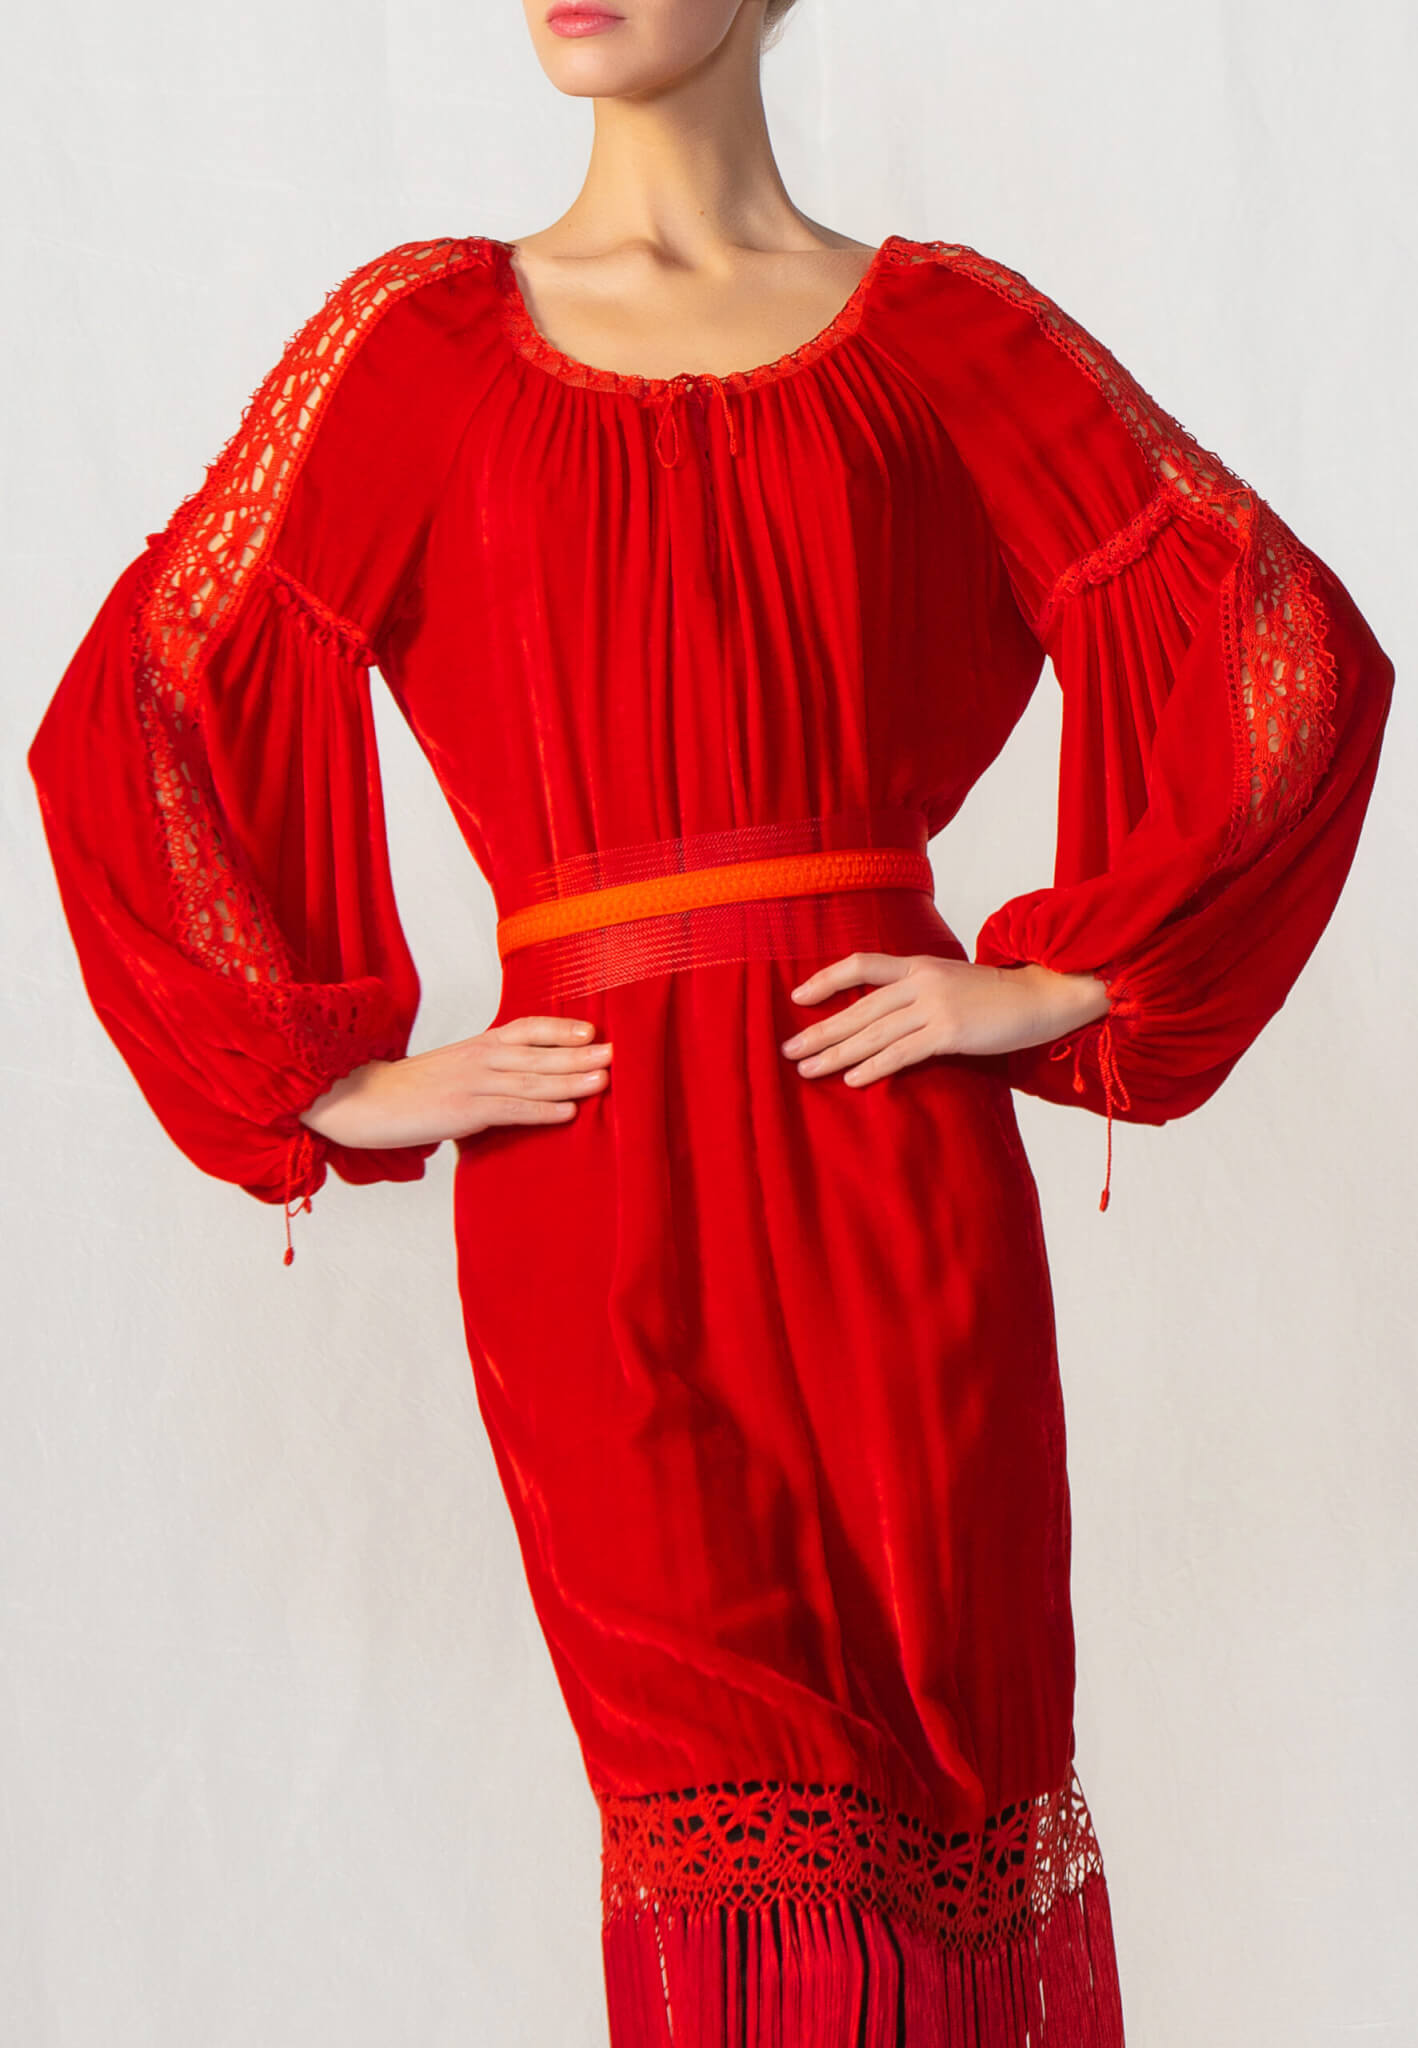 Red velour dress with tassels